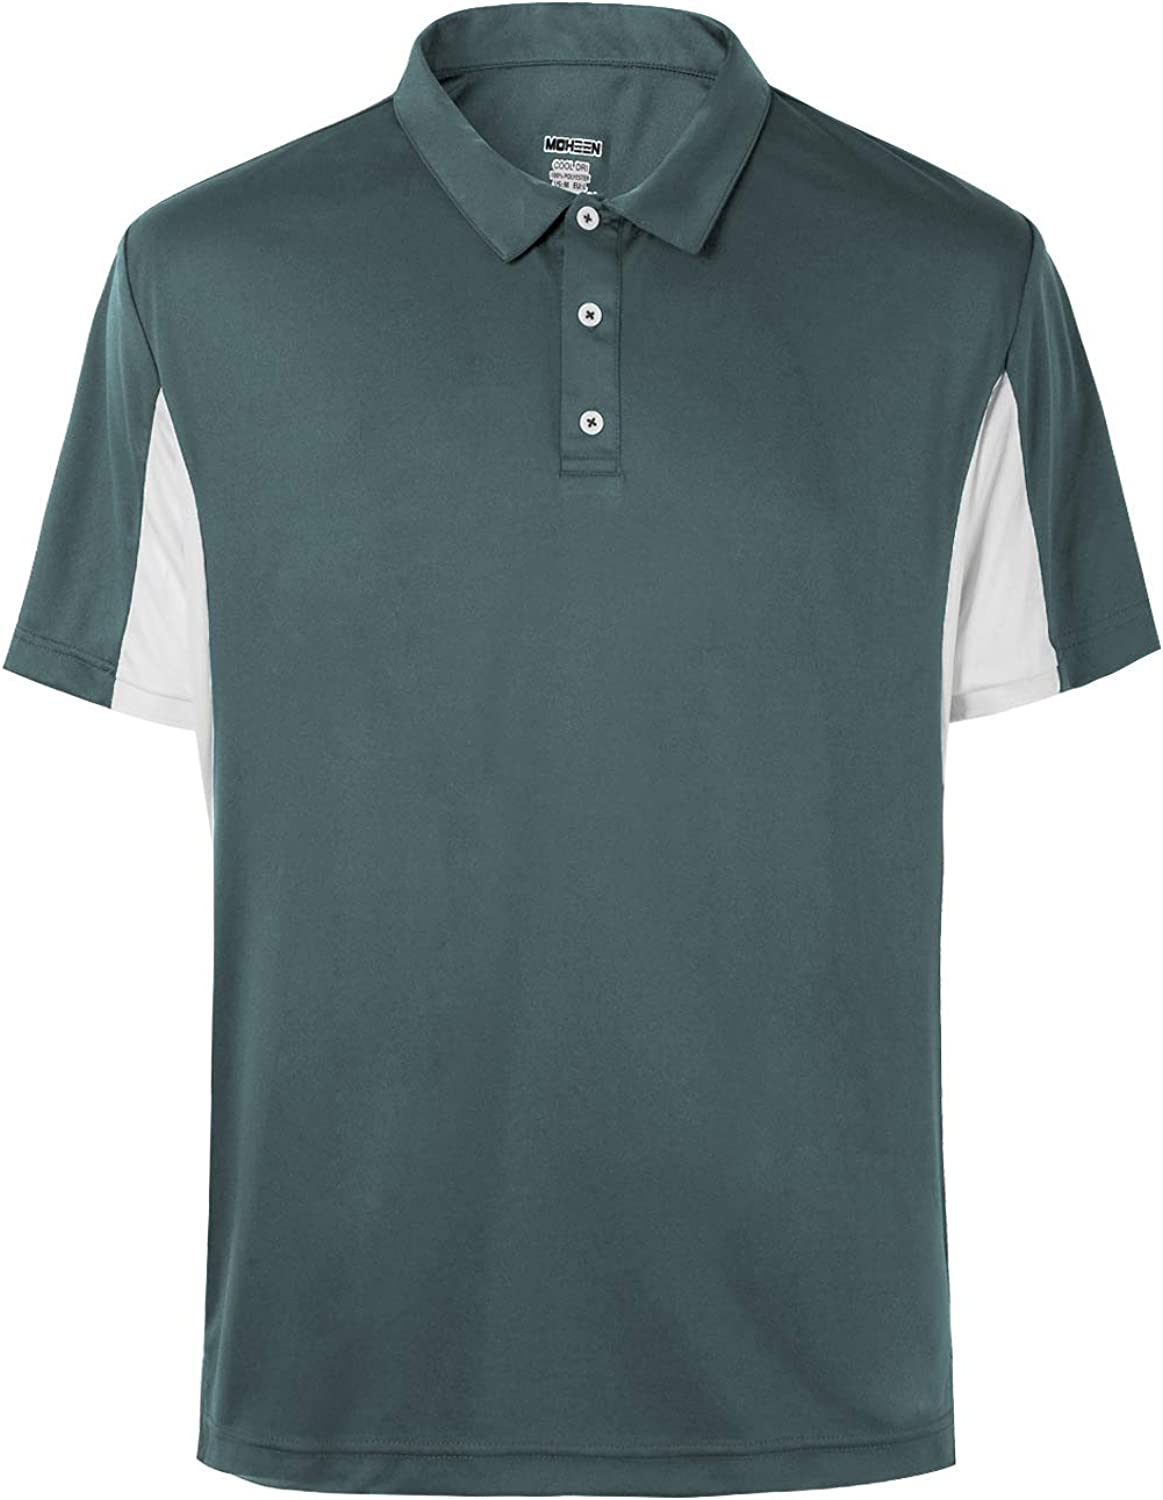 Galls CoolBest II Mens Short Sleeve Wicking Performance Polo Shirt Black Wicks Away Moisture Quickly and Absorbs Heat Slowly